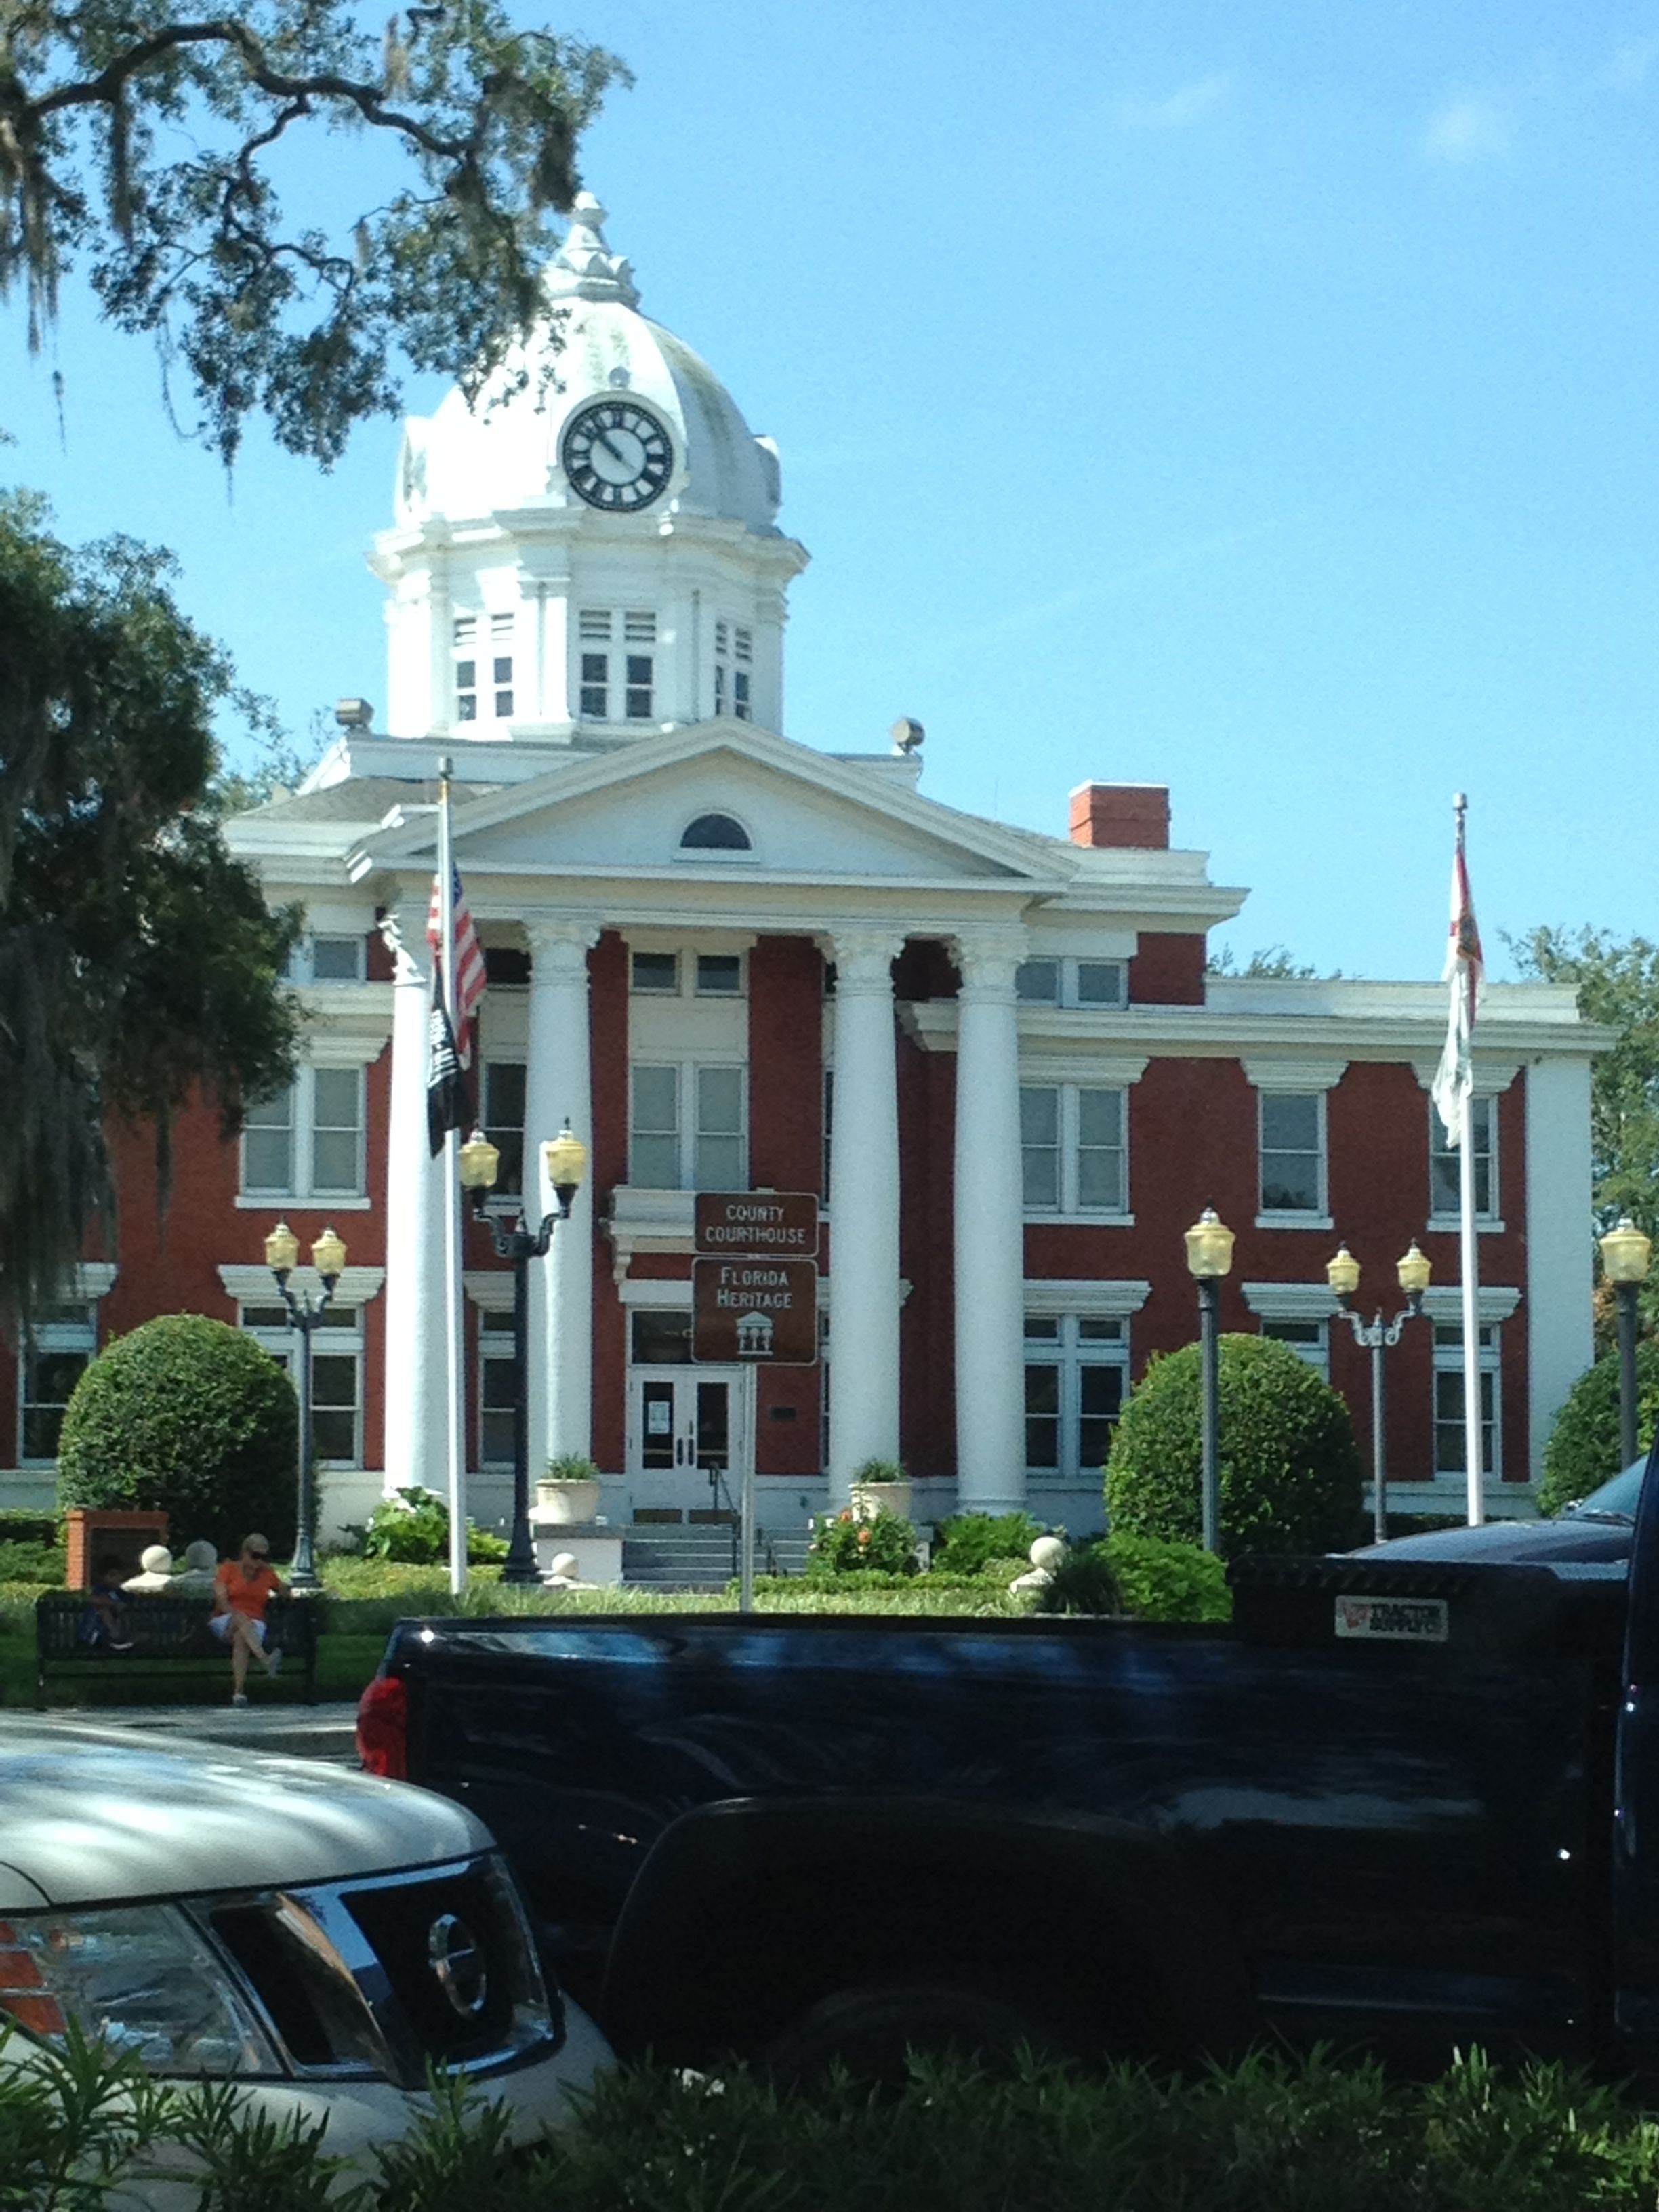 Dade city courthouse florida where our marriage license